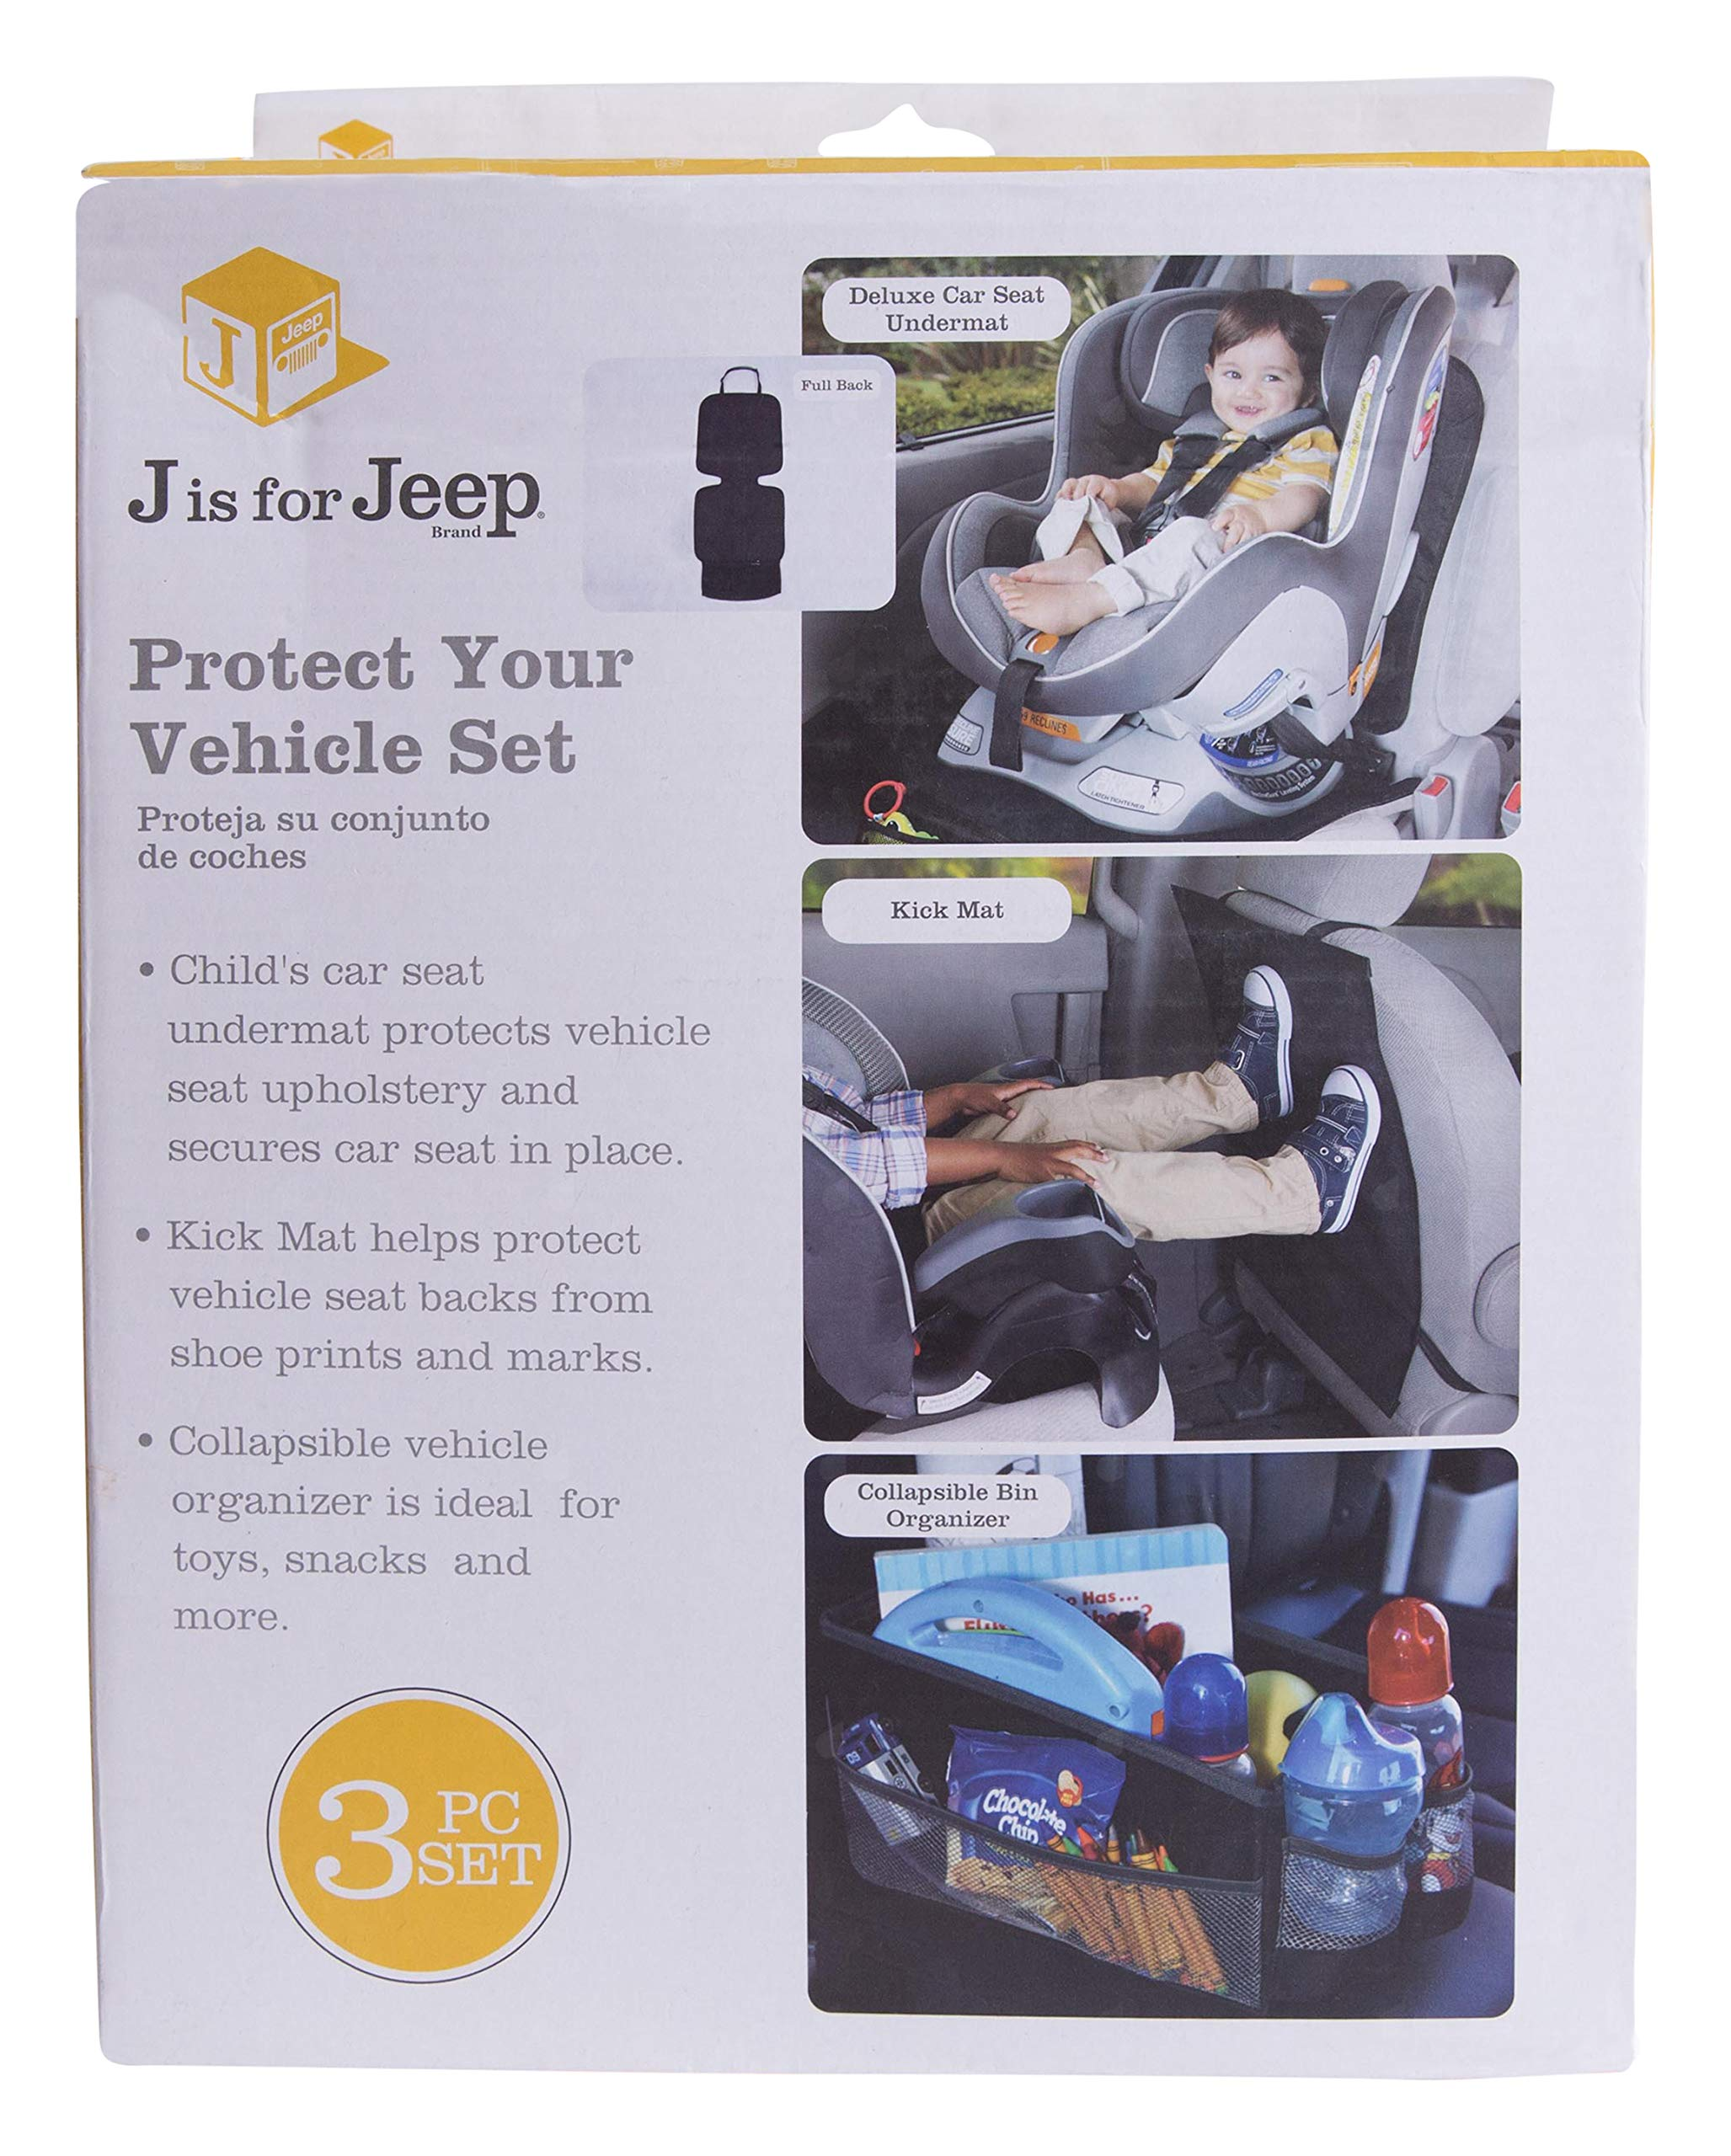 JEEP Vehicle Protection Accessory Set: Deluxe Car Seat Undermat,Kick Mat, Bin Organizer by Jeep